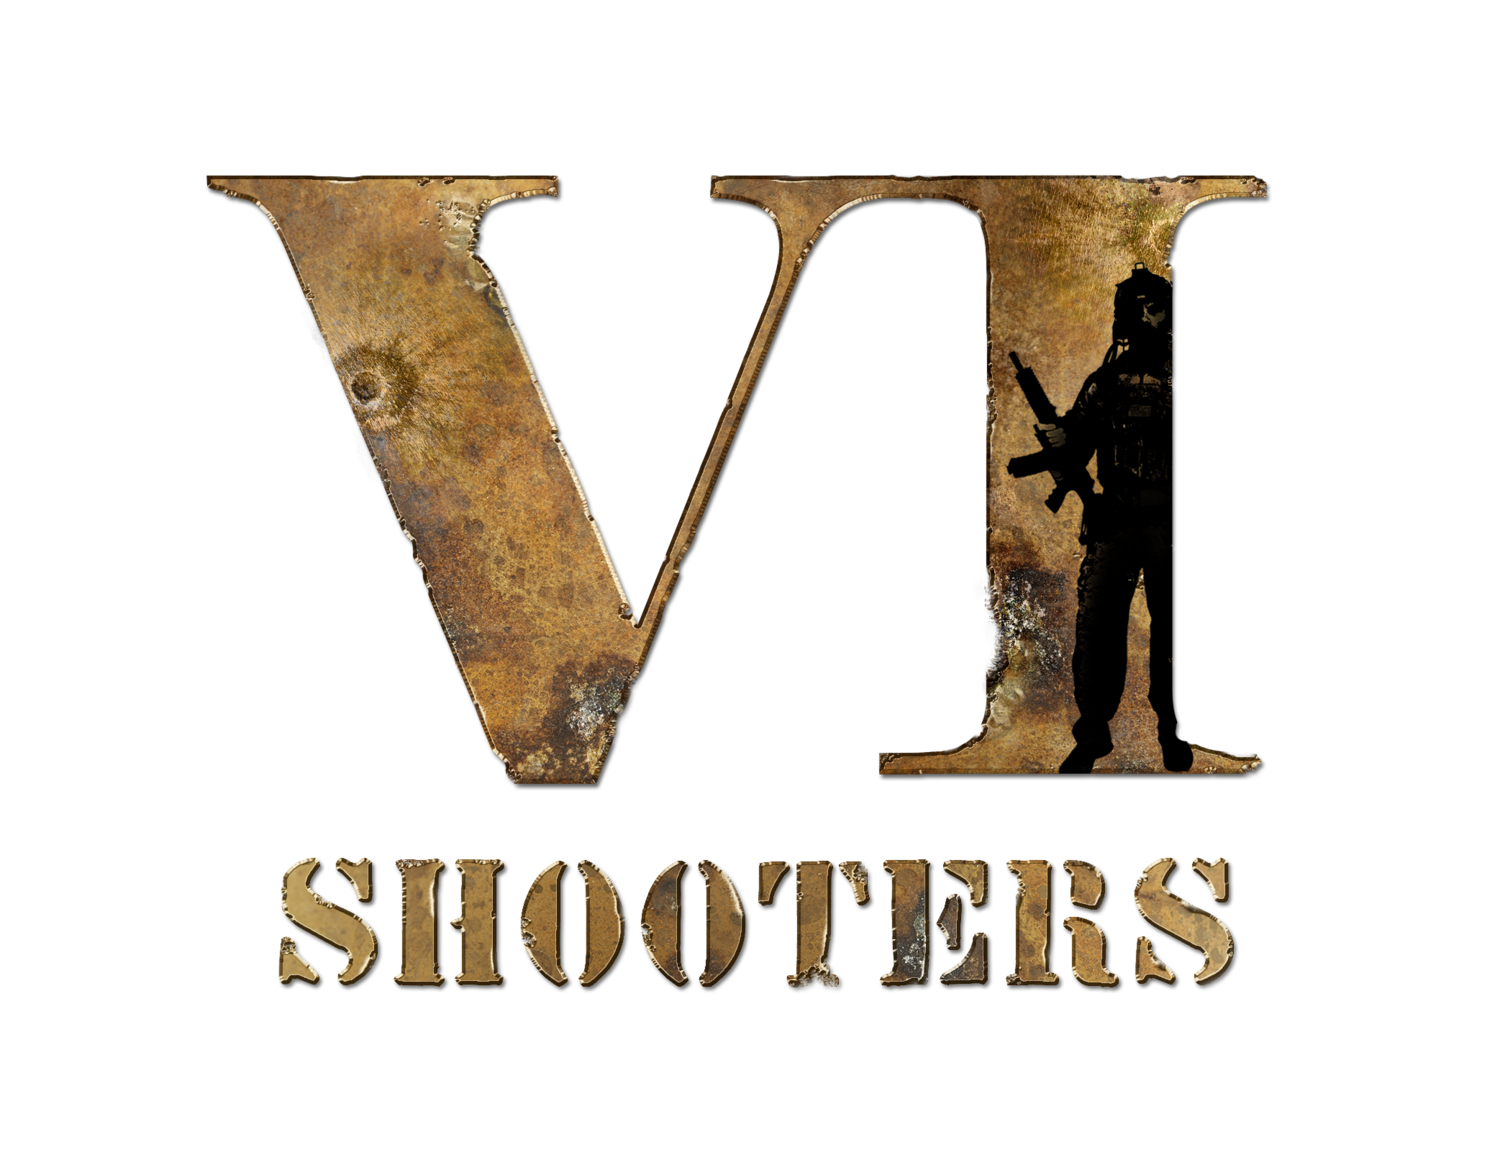 VI Shooters